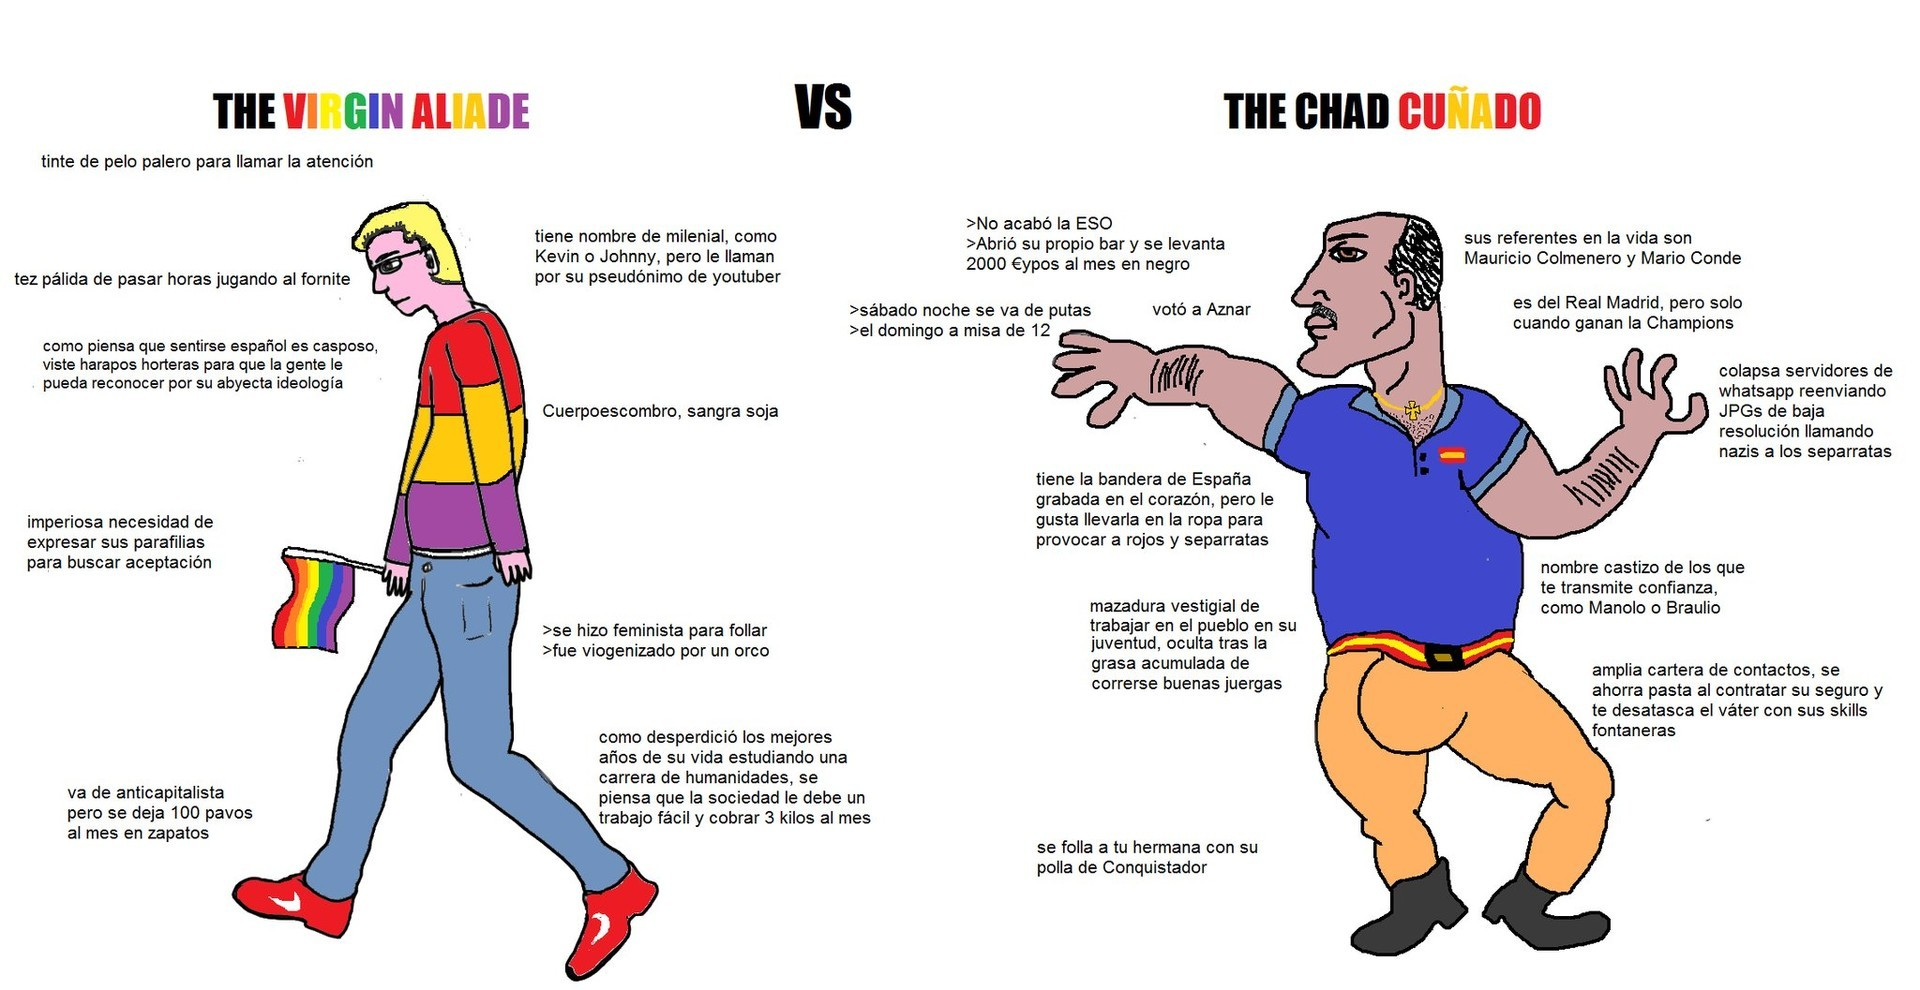 Virgin aliade VS the chad cuñado - meme